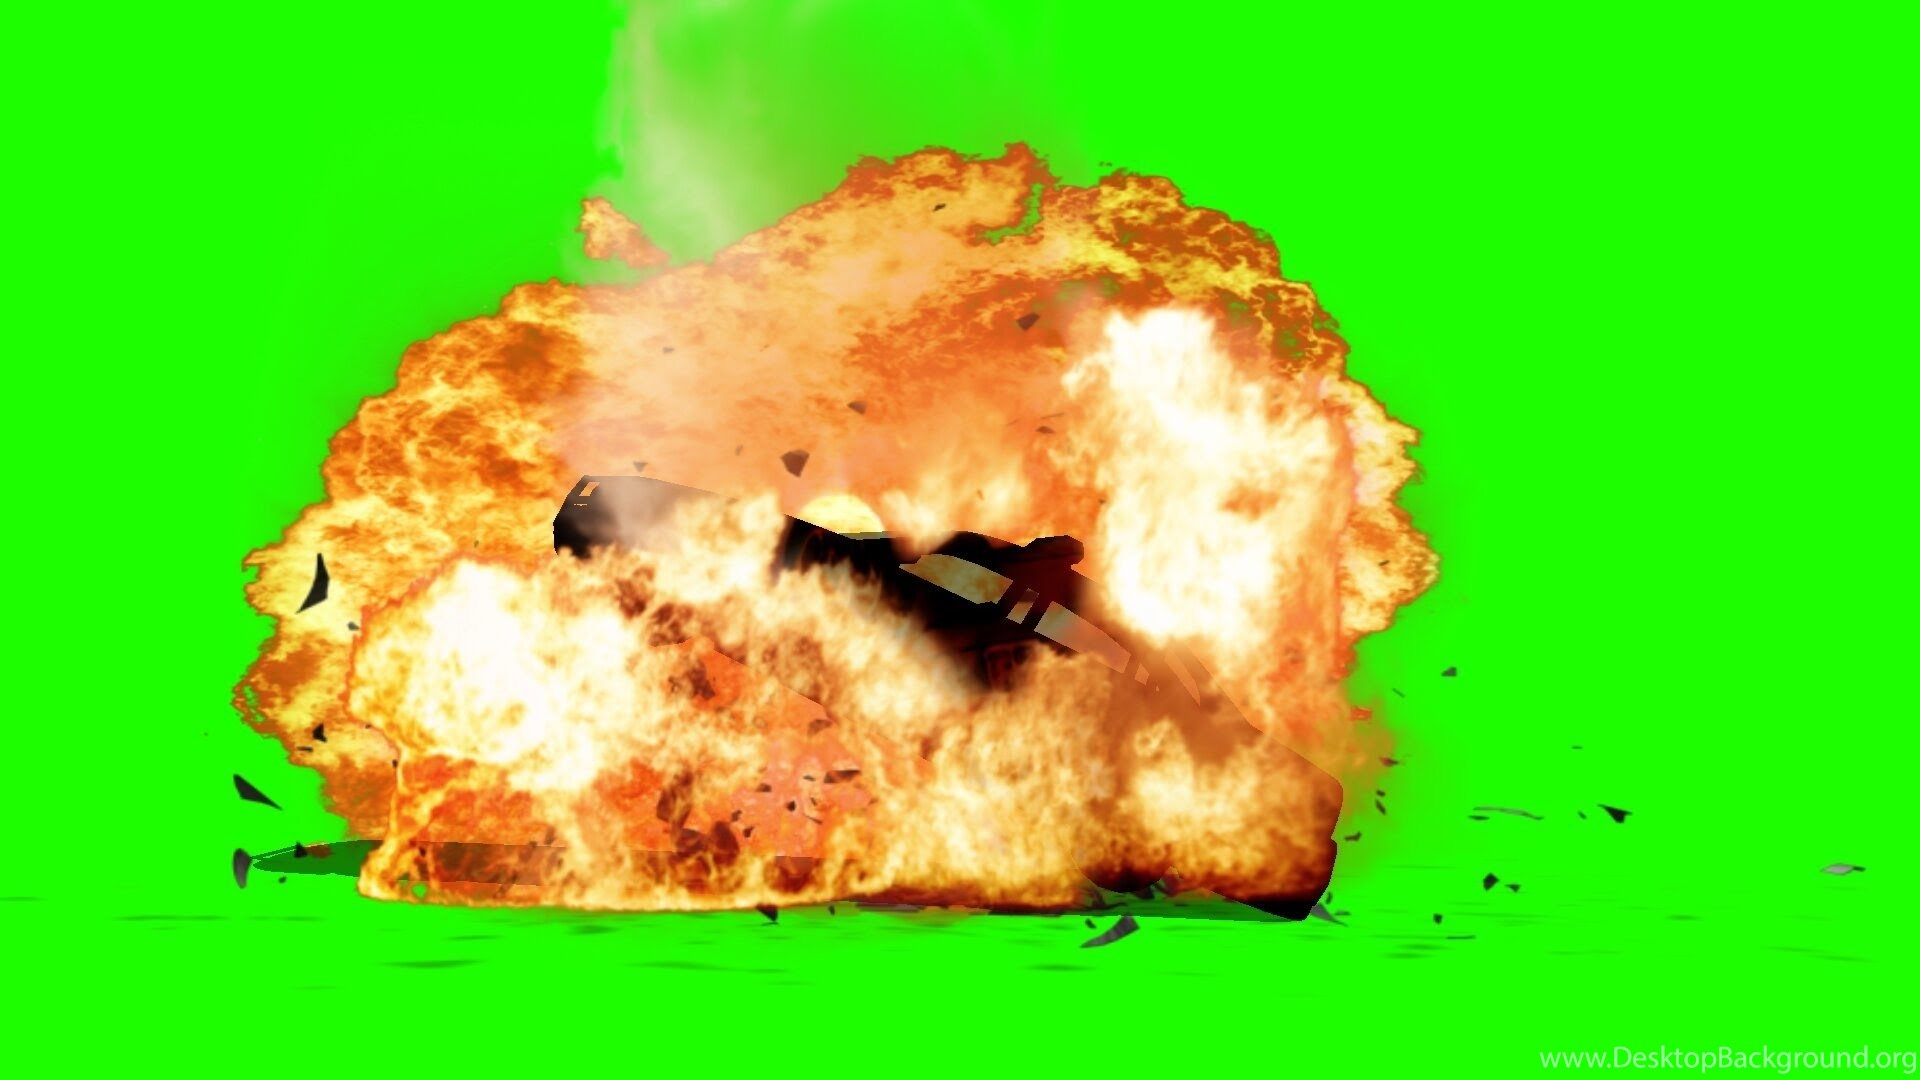 Police Car Explodes Big Fire Explosion Green Screen Effects